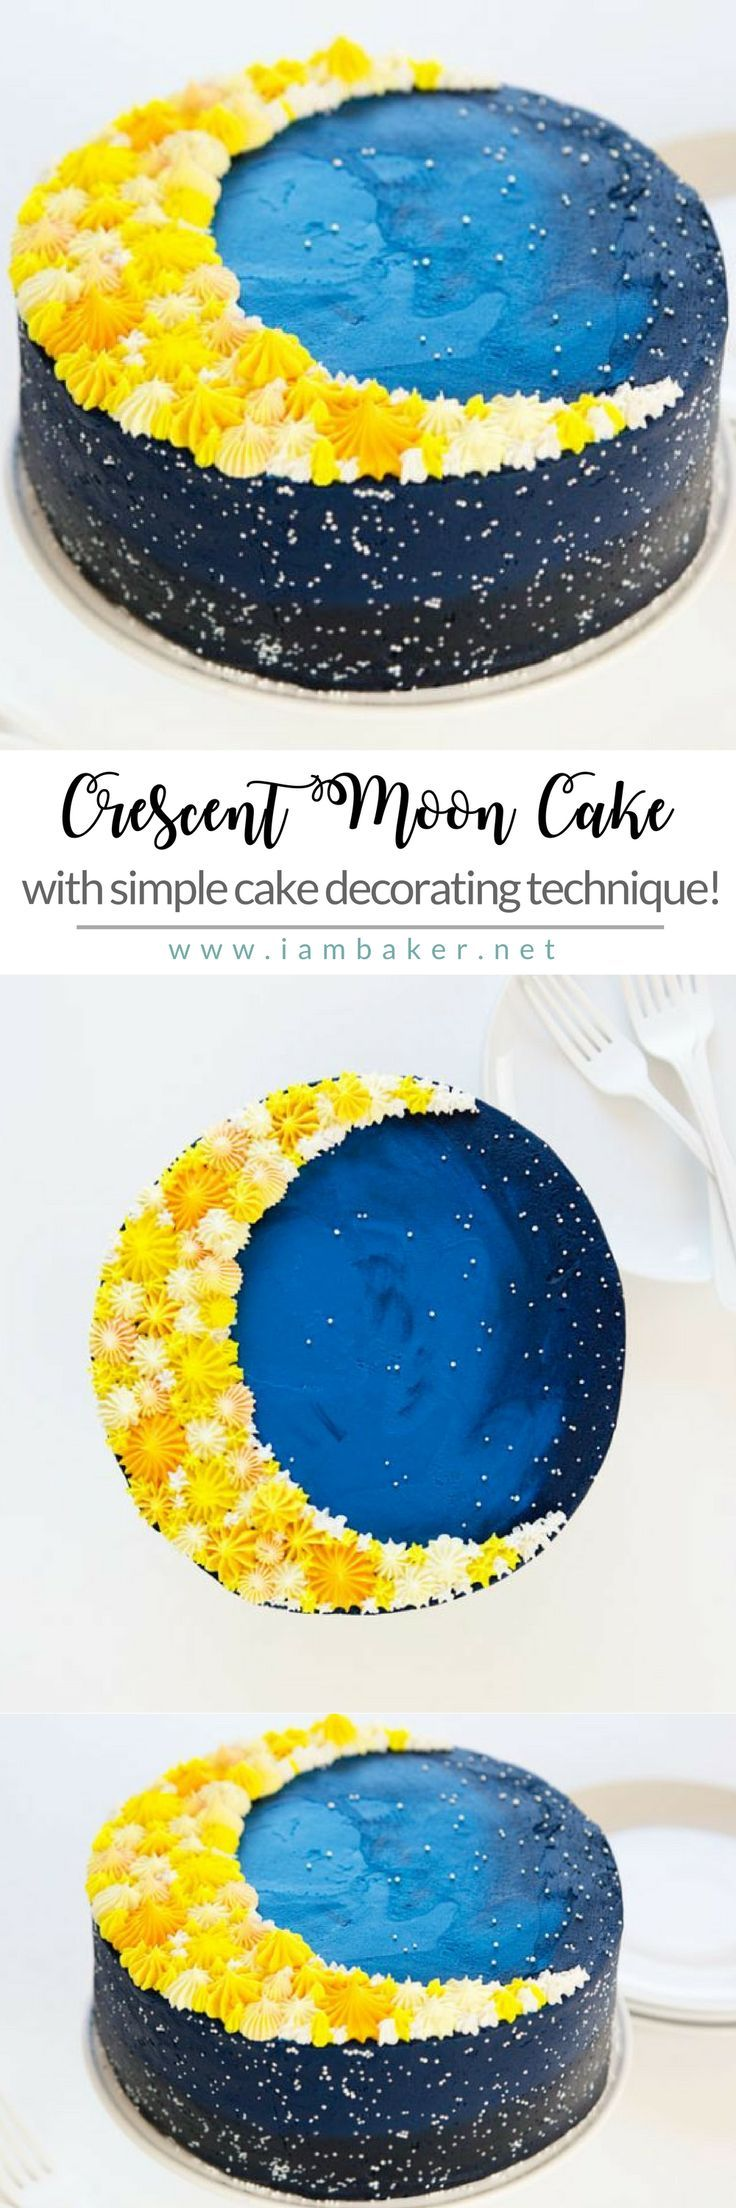 Learn to step by step on how to bake this easy cake recipe with a simple decorating technique- Crescent Moon Cake! All you need are some yellow and blue buttercream frosting to create awesome cake design! Don't forget to check our website for more easy dessert recipes by @iambaker #iambaker #iambakerdessert #iambakercake #cakedecorating